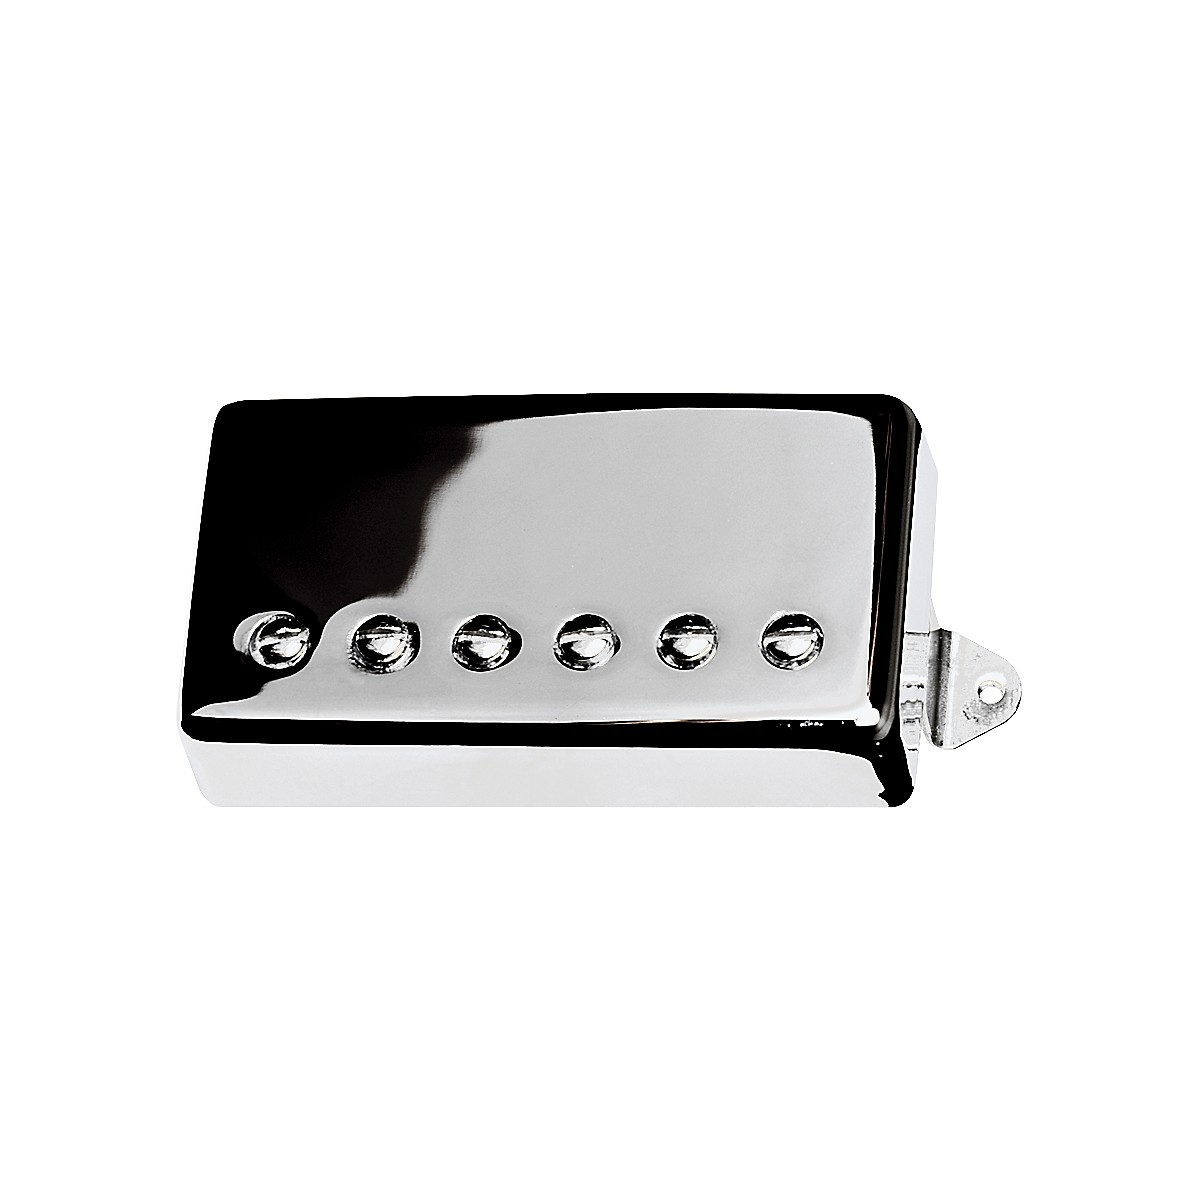 DiMarzio DP103N PAF Single Conductor Humbucker 36th Anniversary Guitar Pickup